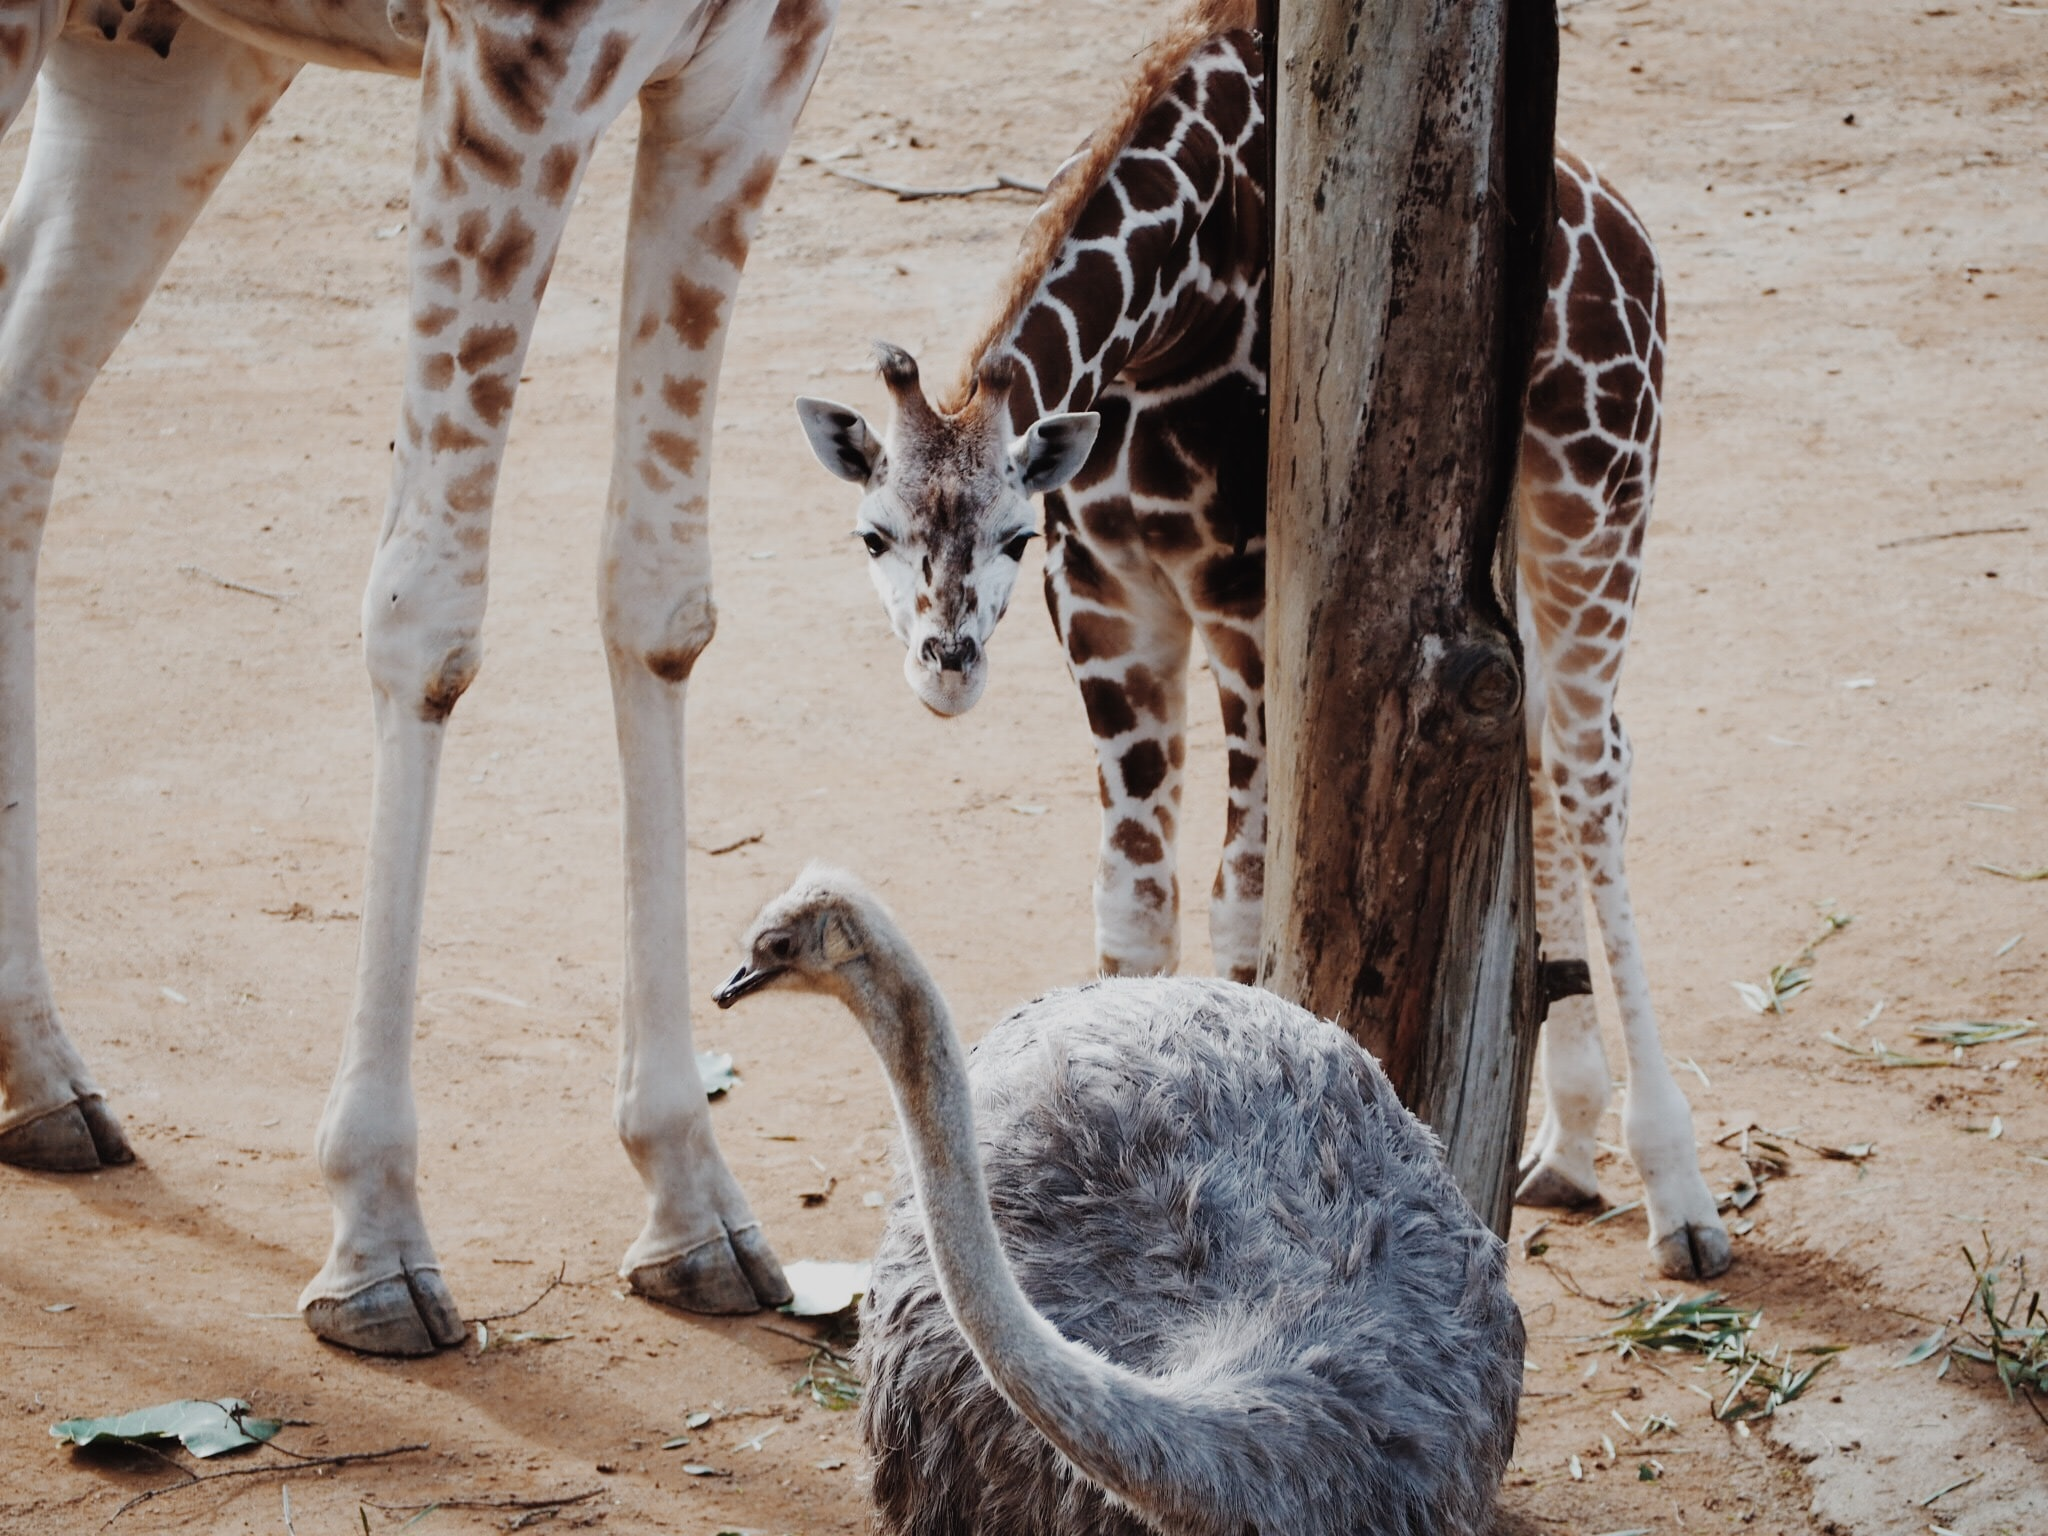 baby giraffe looking at the ostrich